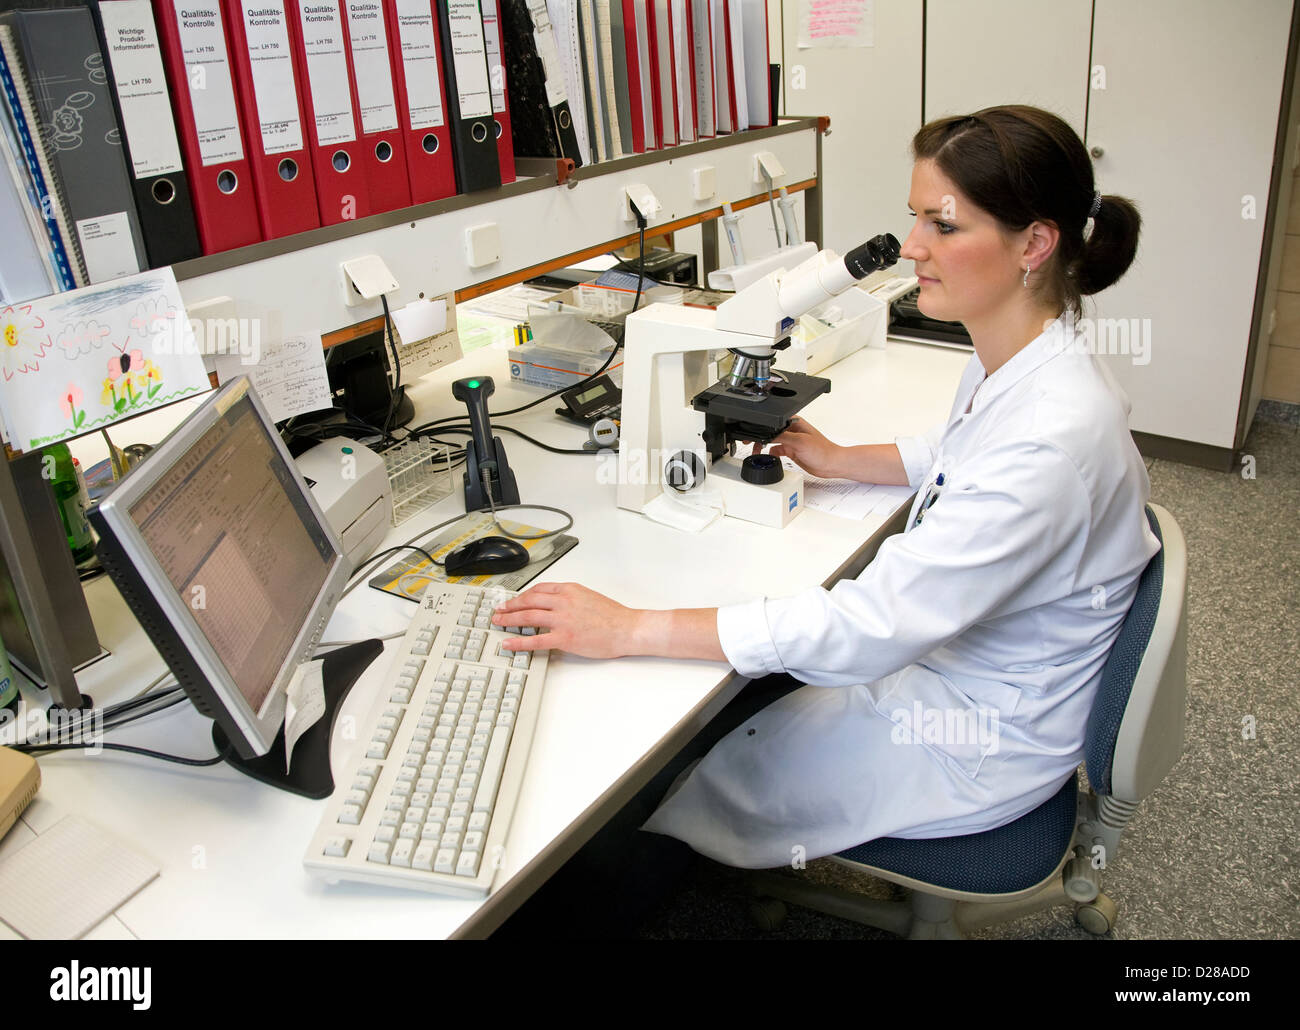 Essen, Germany, Zytologieassistentin examines blood cells under the microscope Stock Photo